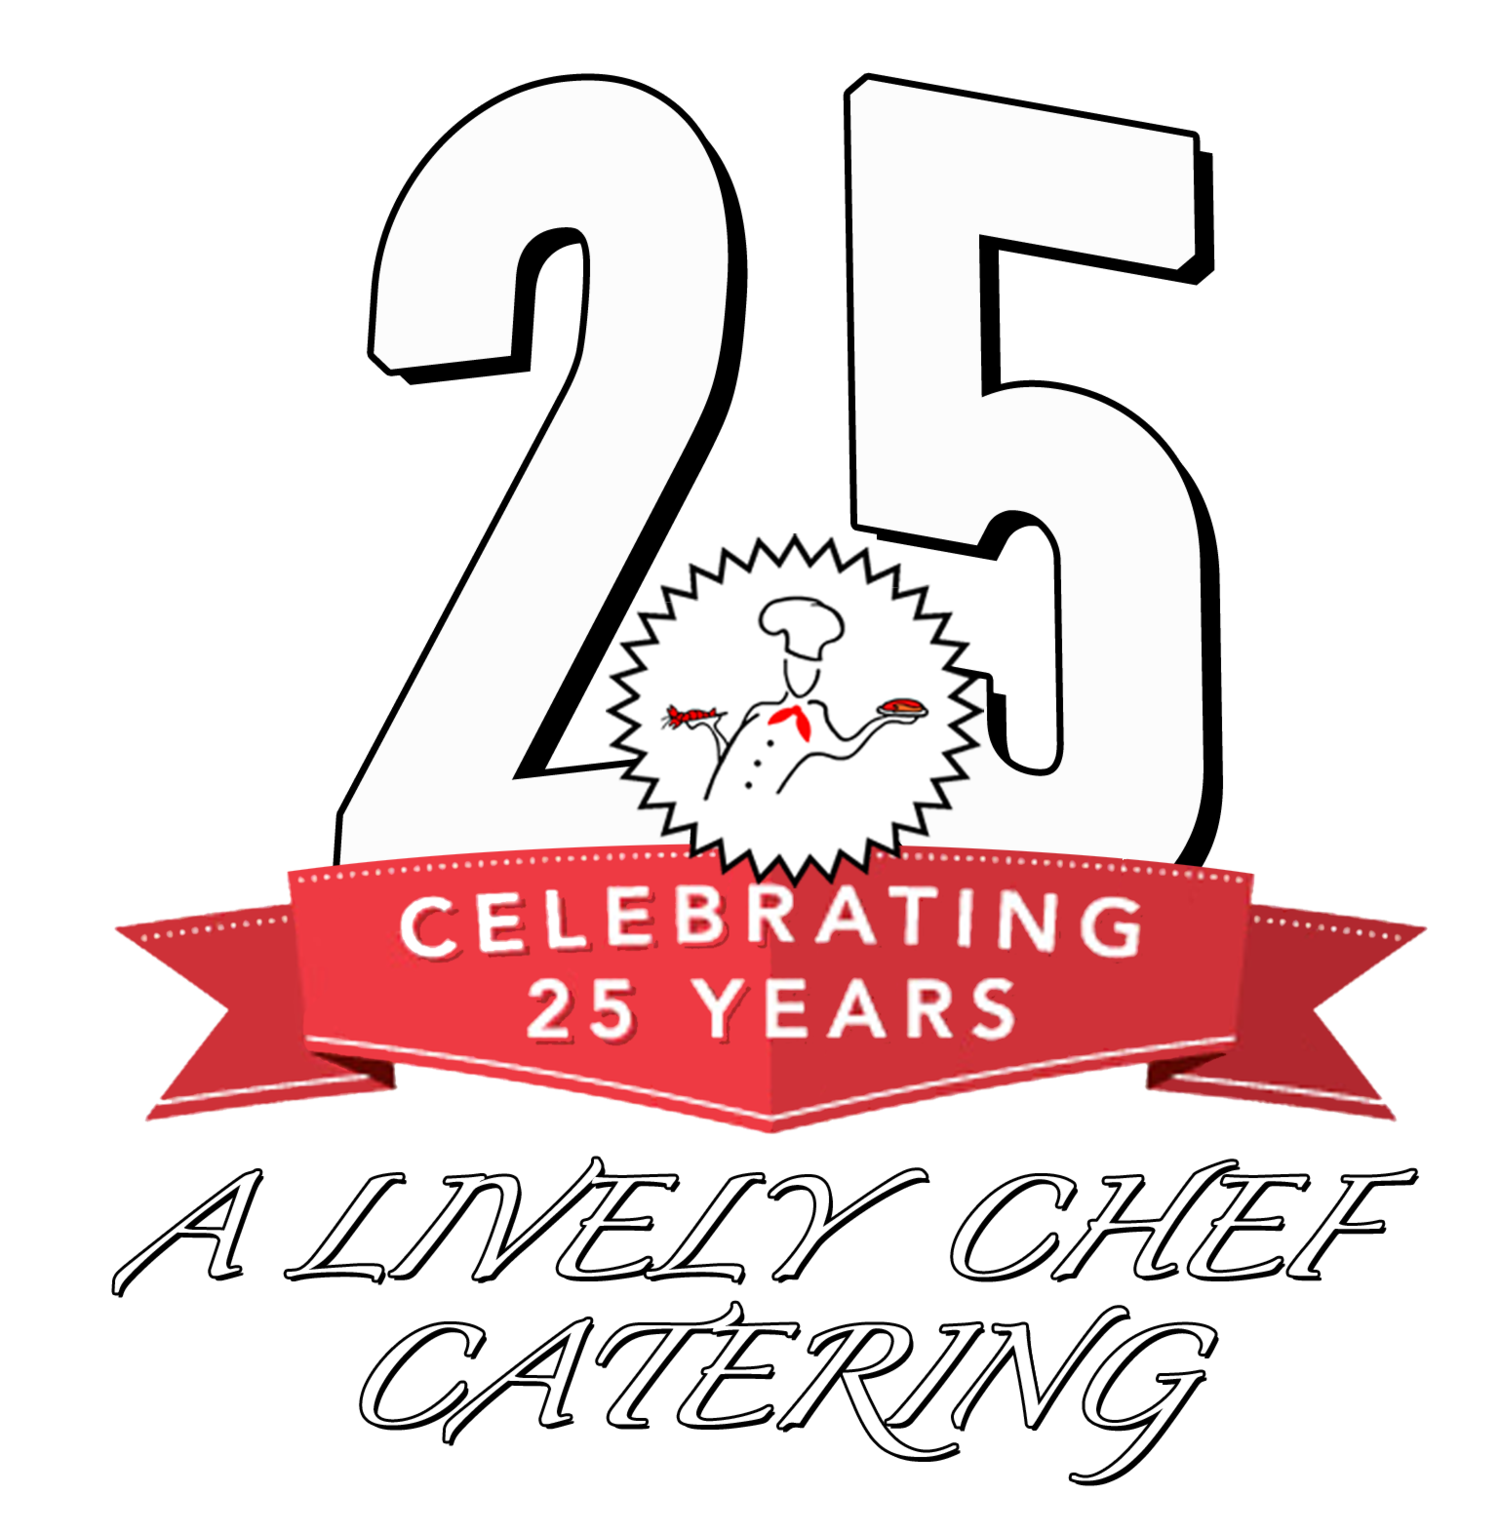 A Lively Chef Catering